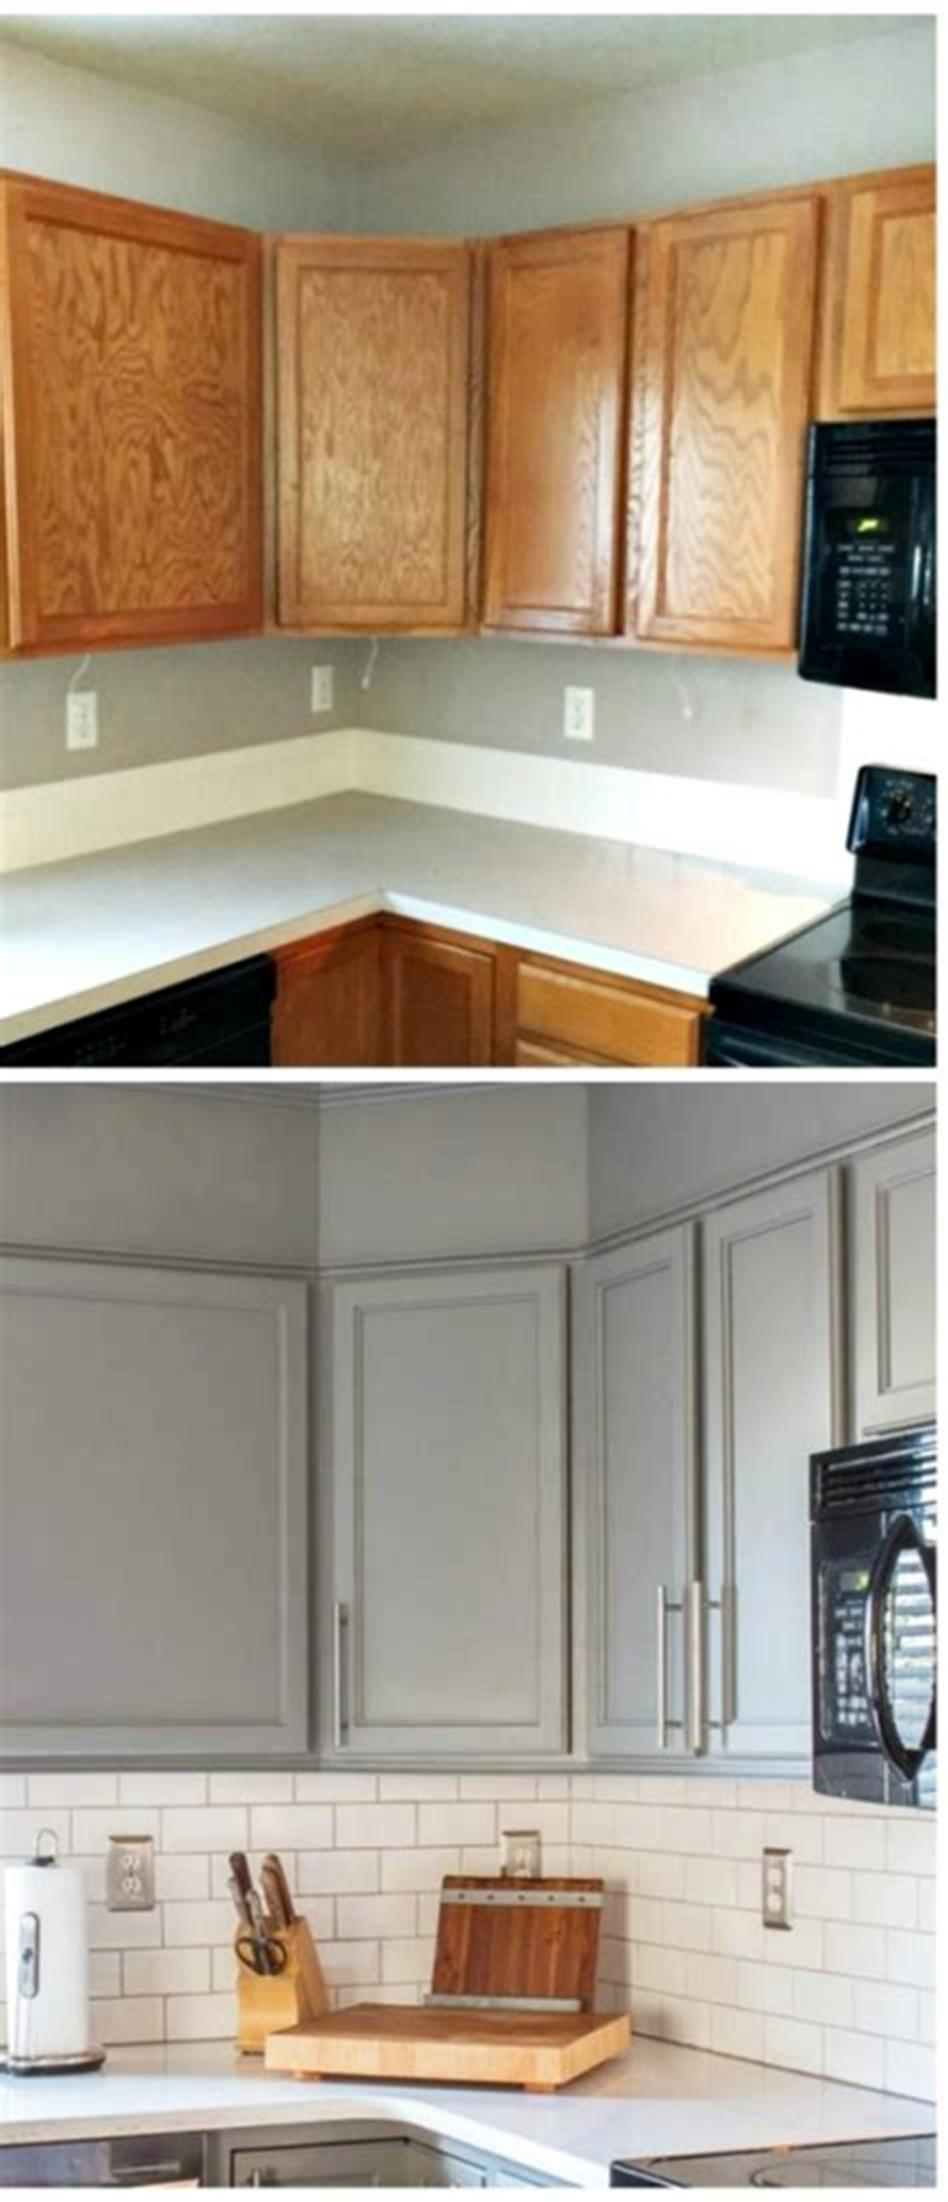 43 Amazing Kitchen Remodeling Ideas for Small Kitchens 2019 6